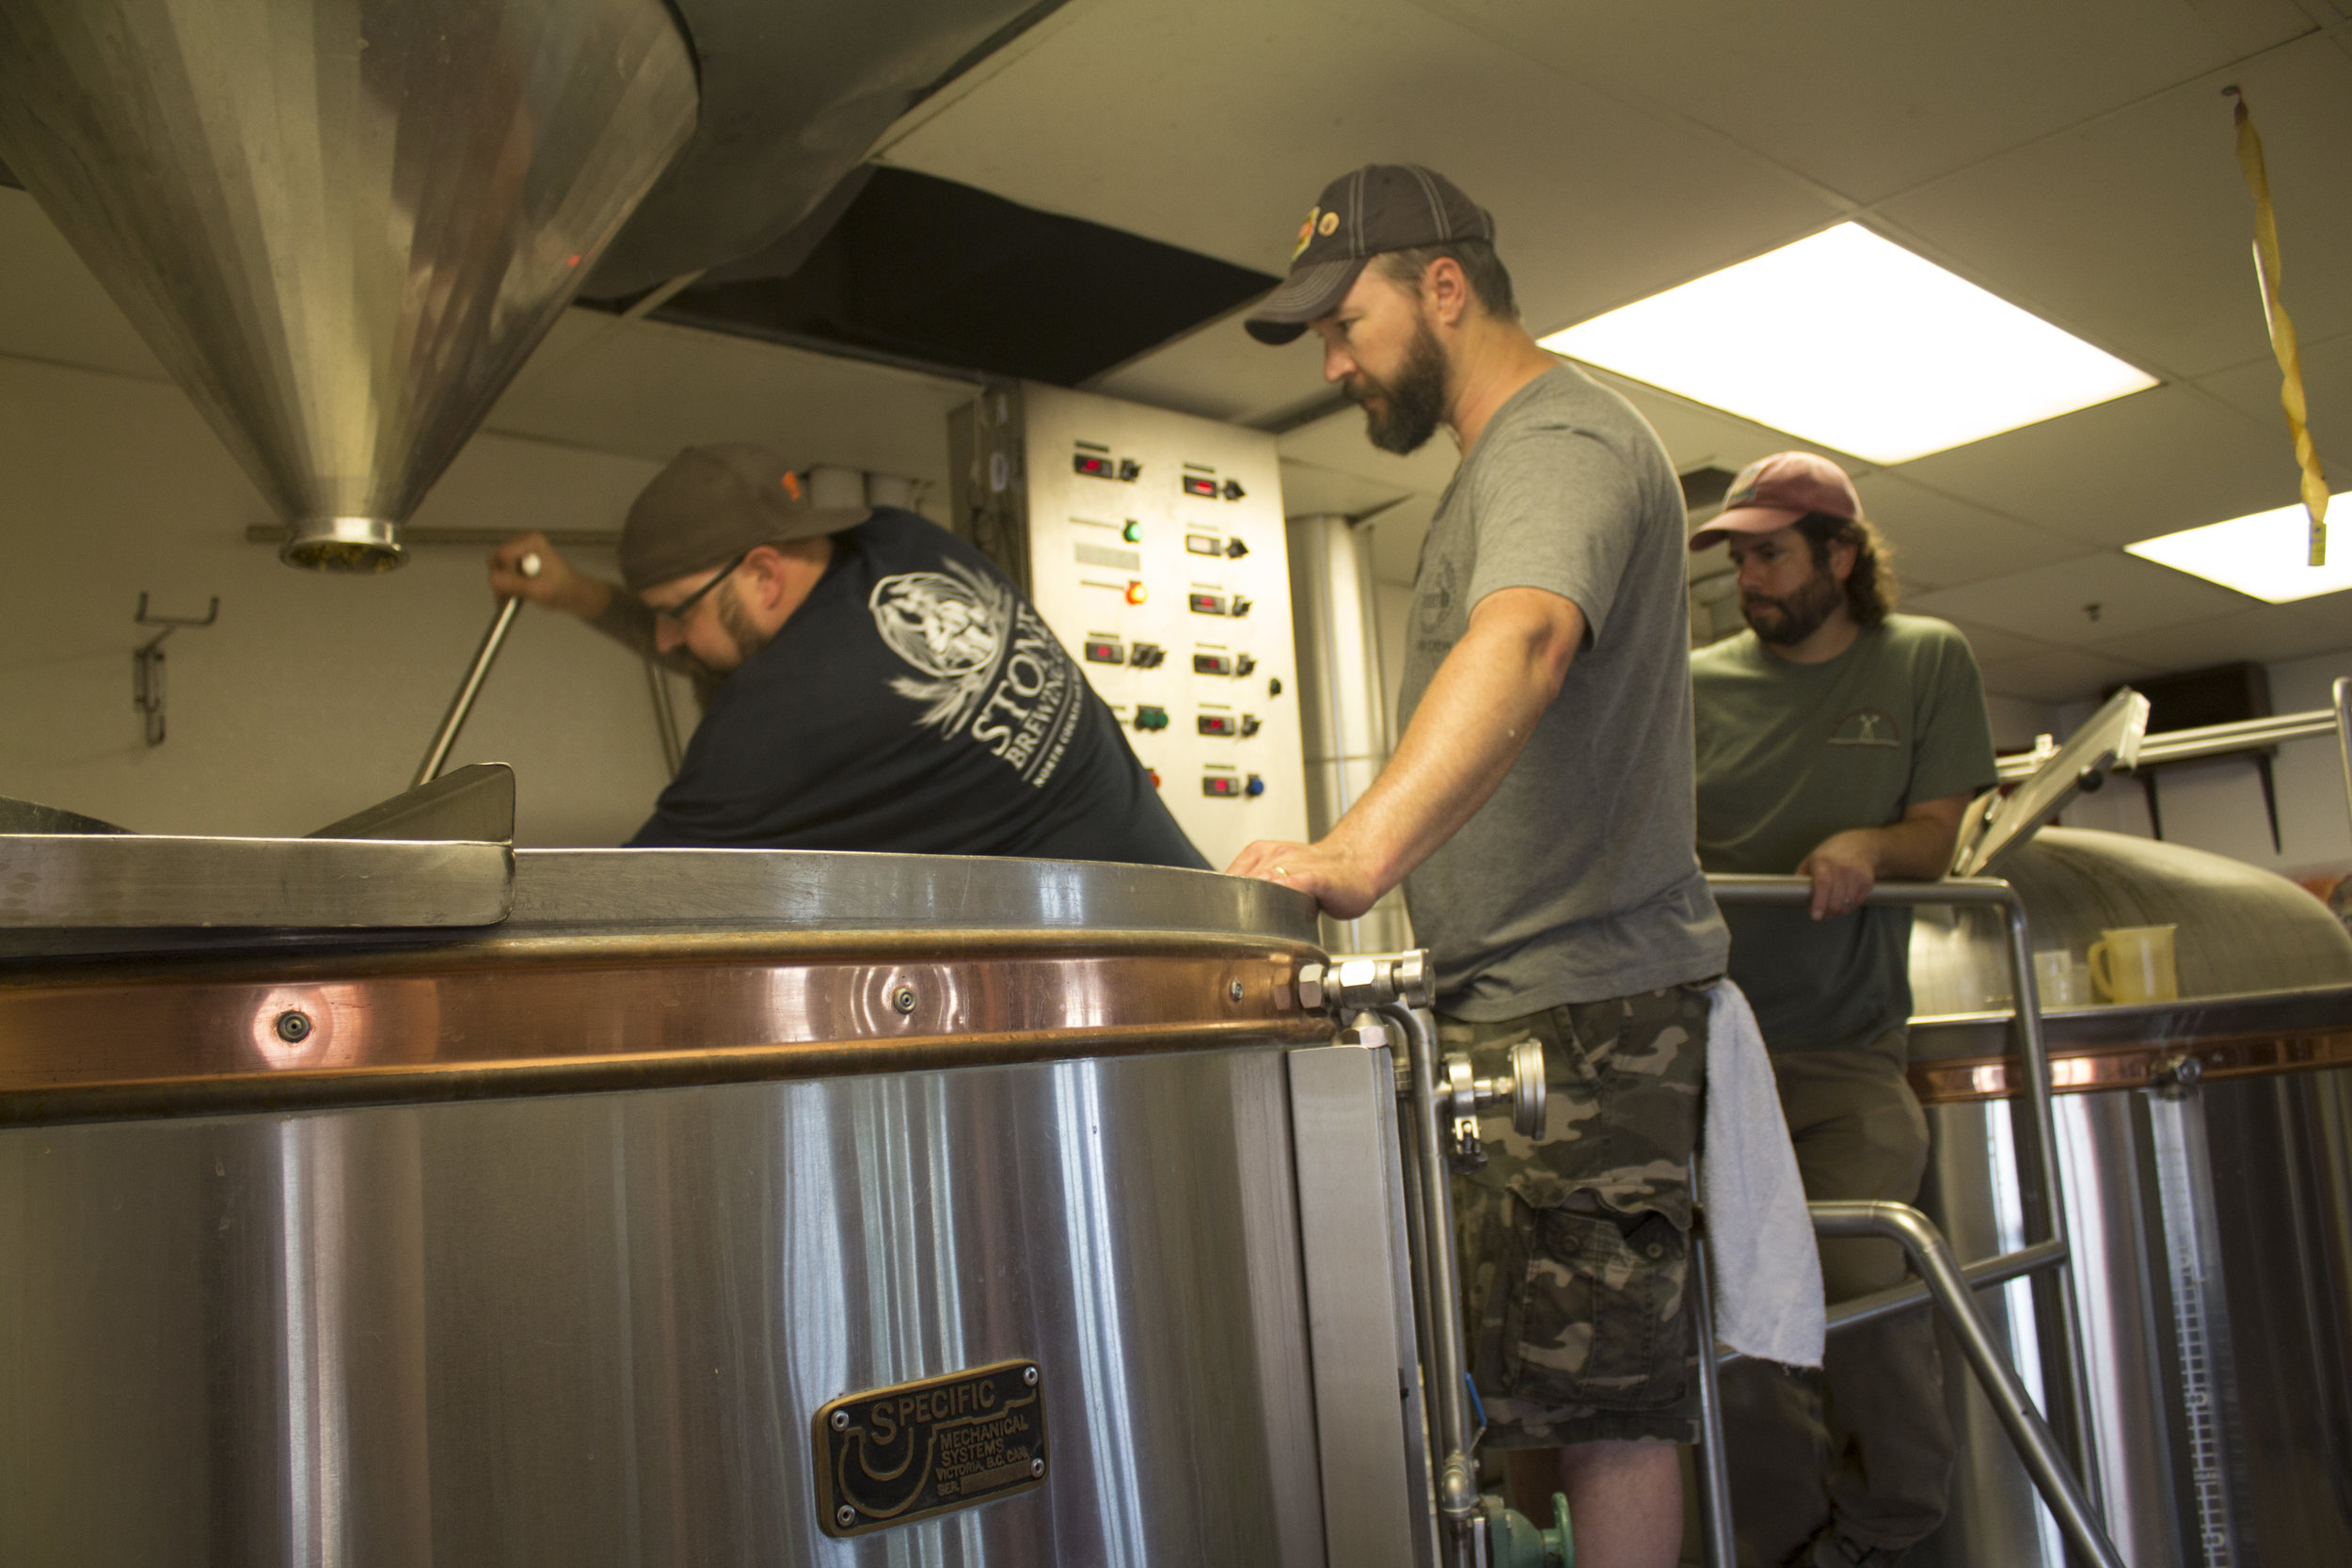 Stirring 700+ pounds of grain and water is hard work.  Everyone took turns giving the mash a spin.